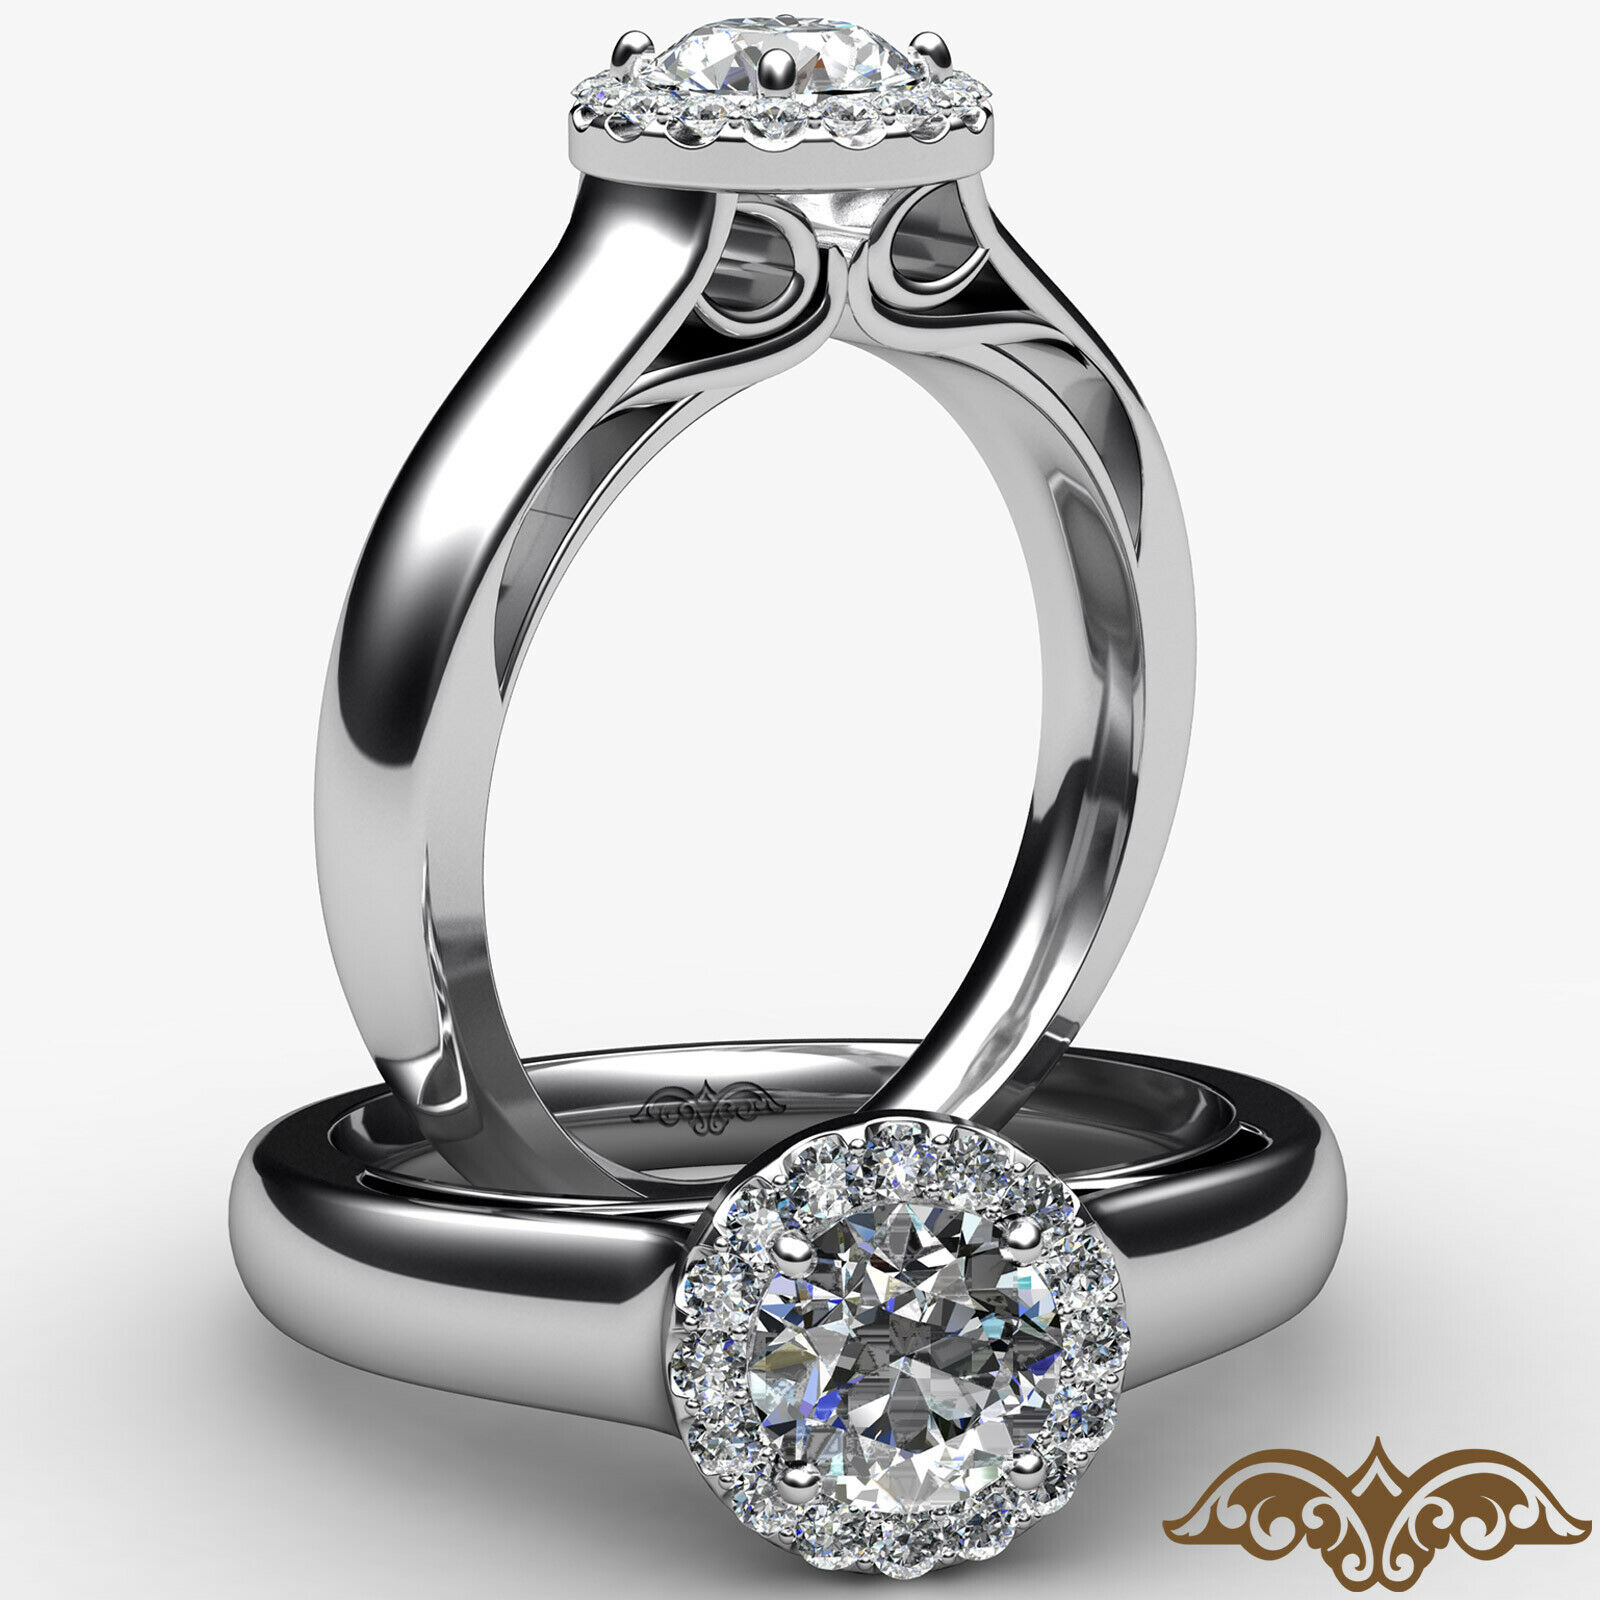 0.7ct Tapered Cathedral Halo Round Diamond Engagement Ring GIA G-VVS1 White Gold